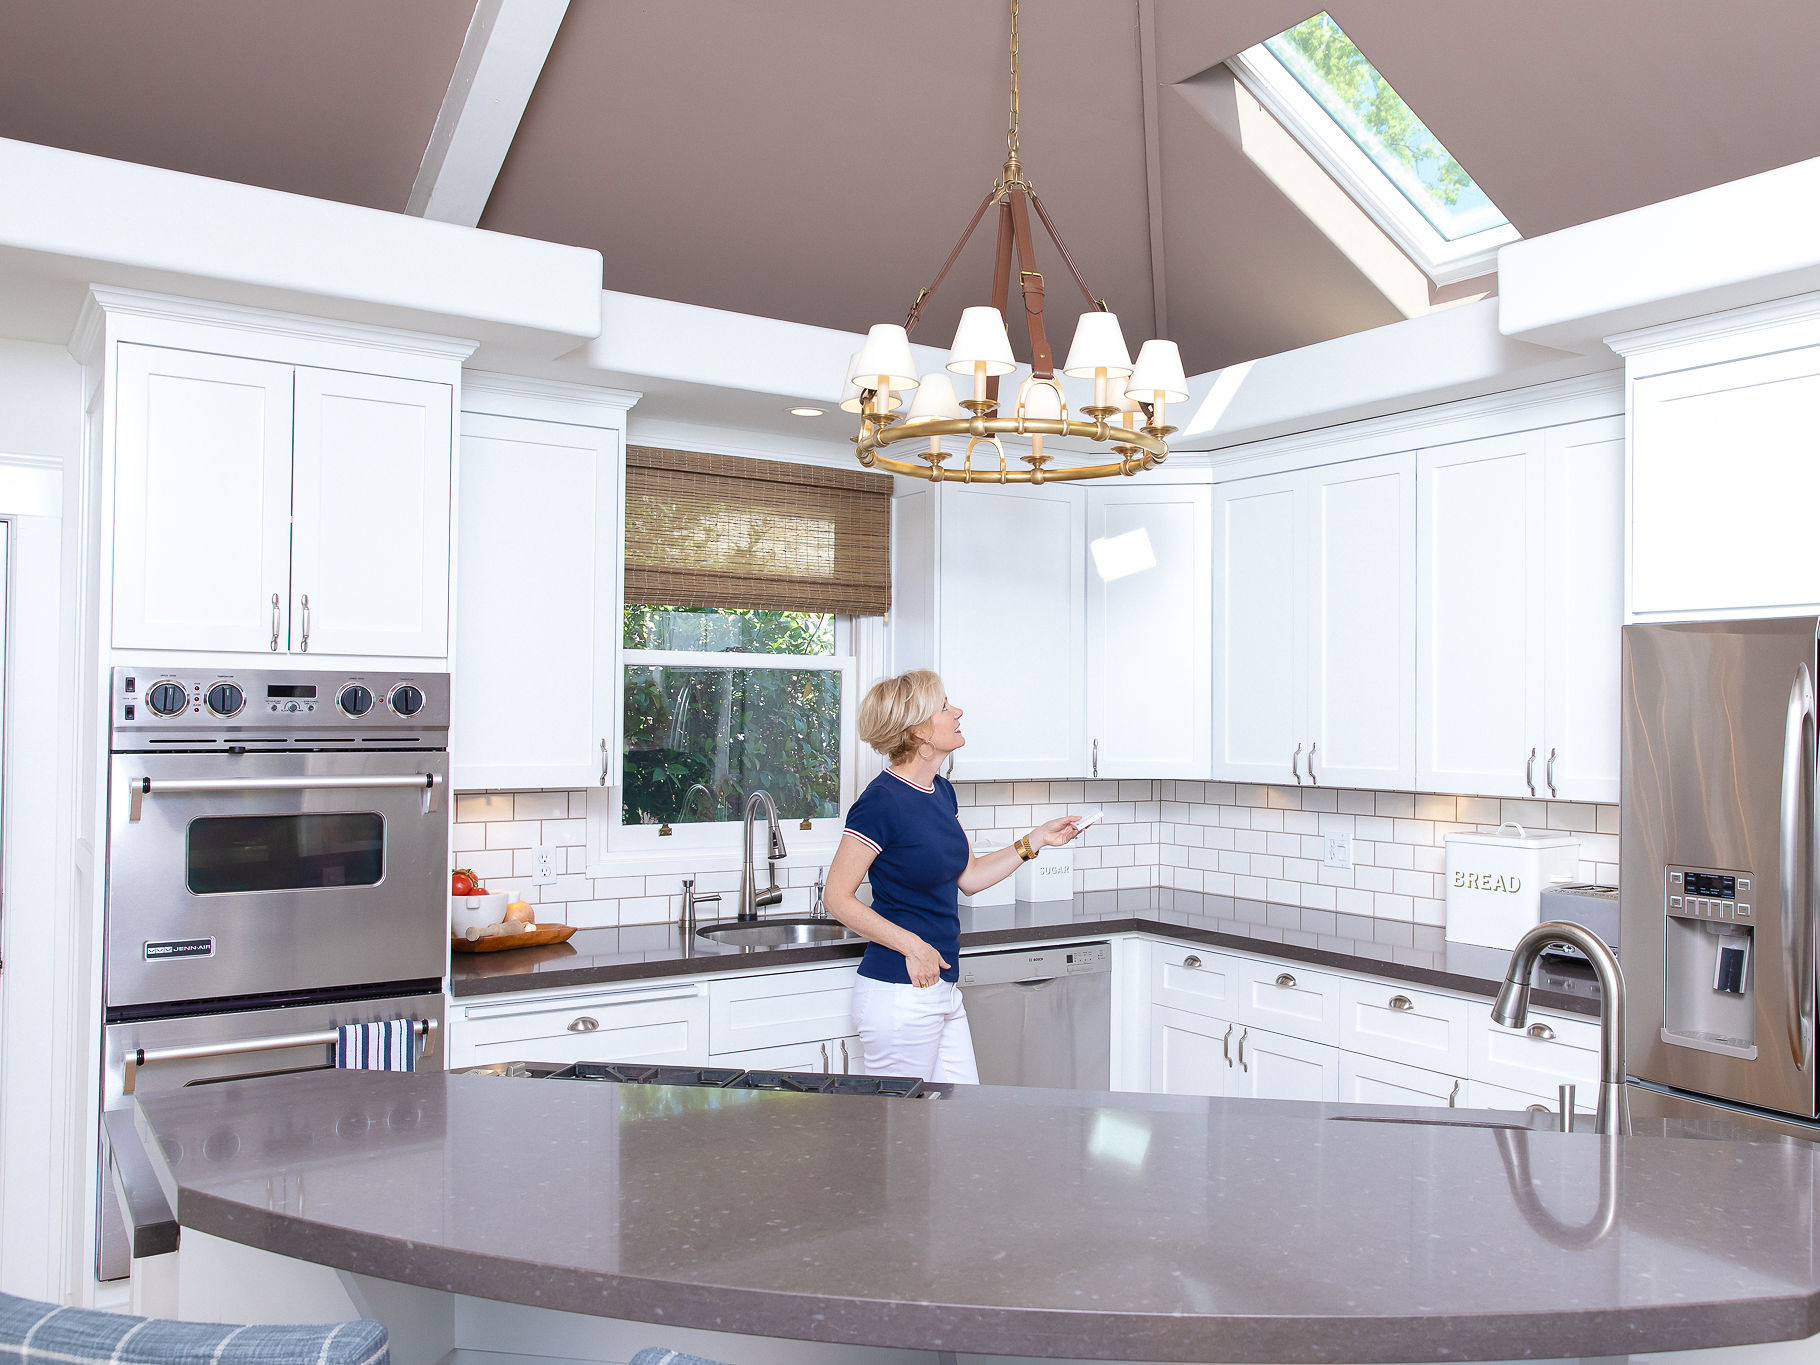 woman in a kitchen using a remote control to open the skylight above